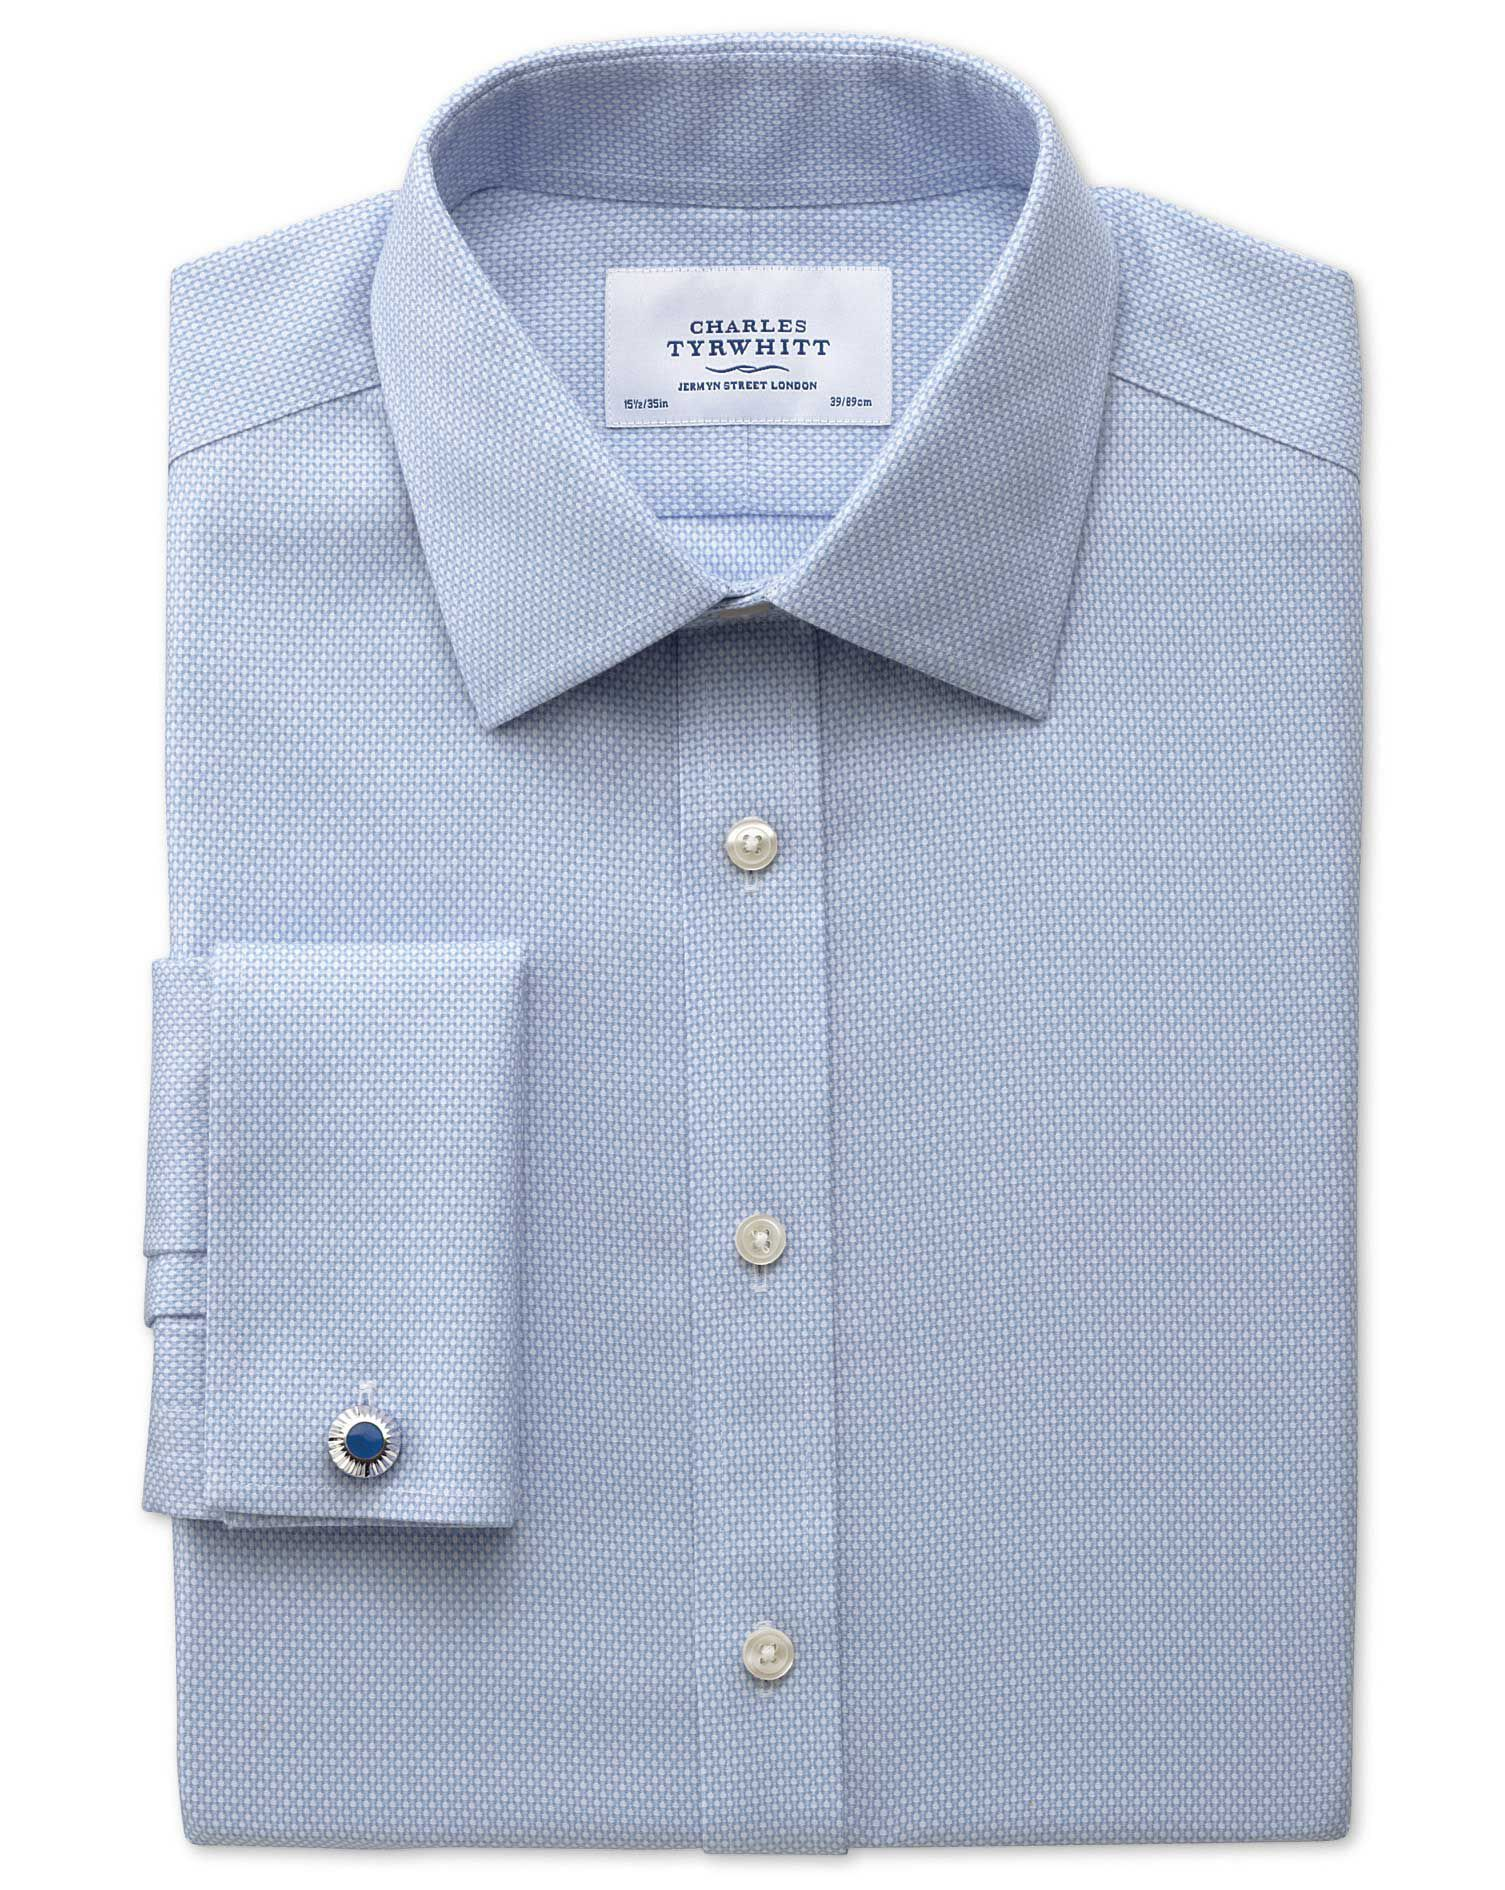 Extra Slim Fit Non-Iron Honeycomb Sky Blue Cotton Formal Shirt Double Cuff Size 16.5/38 by Charles T